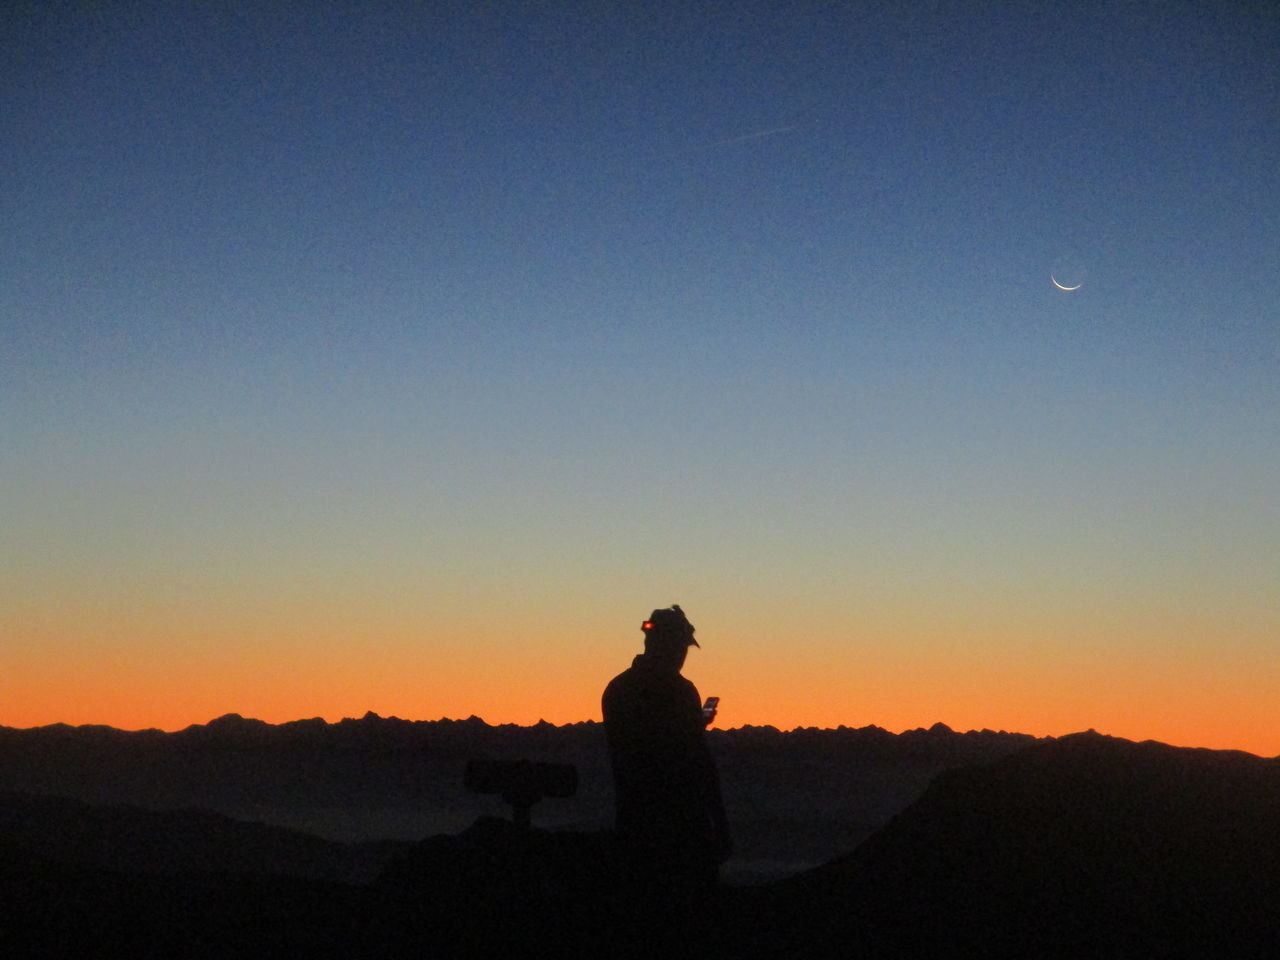 silhouette, sunset, real people, nature, clear sky, copy space, beauty in nature, standing, sky, moon, tranquil scene, scenics, leisure activity, outdoors, tranquility, lifestyles, one person, landscape, mountain, night, people